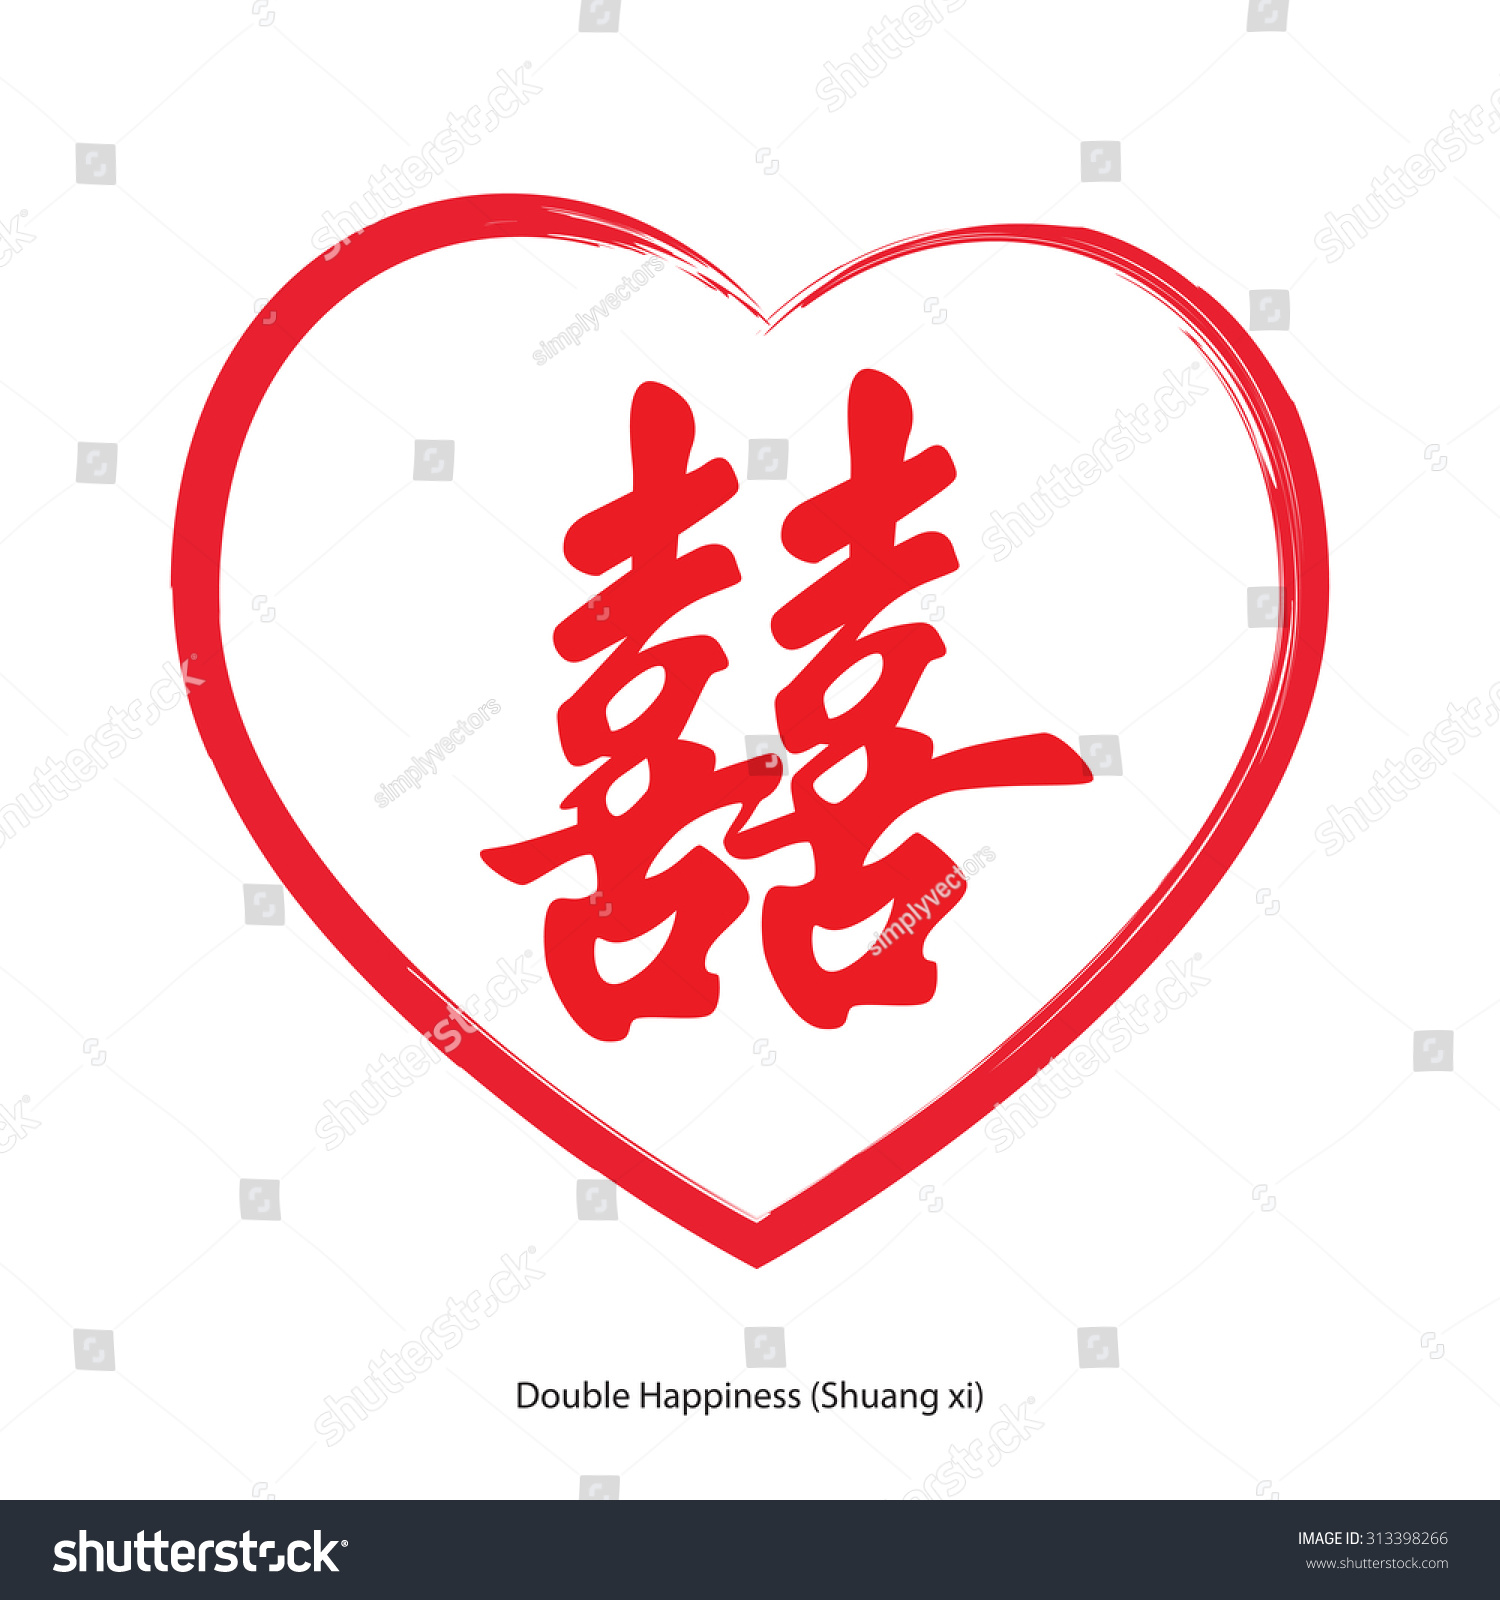 Chinese Character Double Happiness Heart Chinese Stock Vector Hd